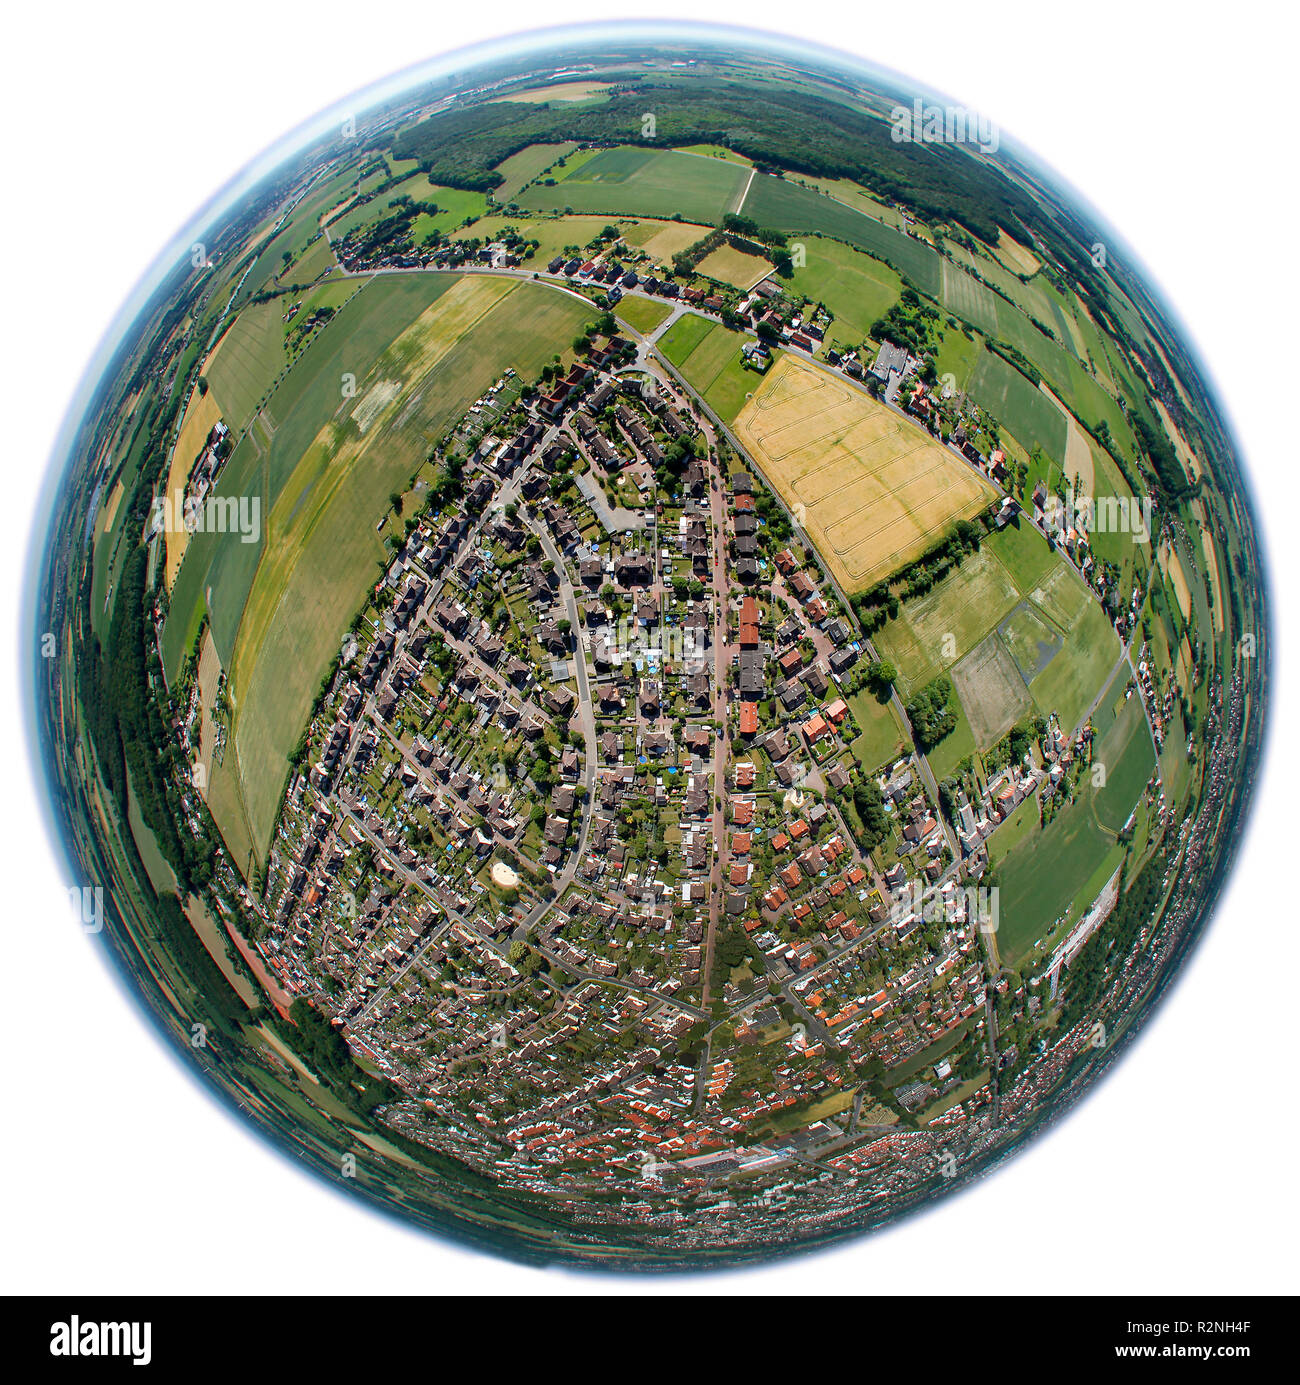 Aerial view, miners settlement detached houses, semi-detached houses, Maximilian settlement, Hamm, North Rhine-Westphalia, Germany, Europe, Fisheye, fisheye lens, round - Stock Image